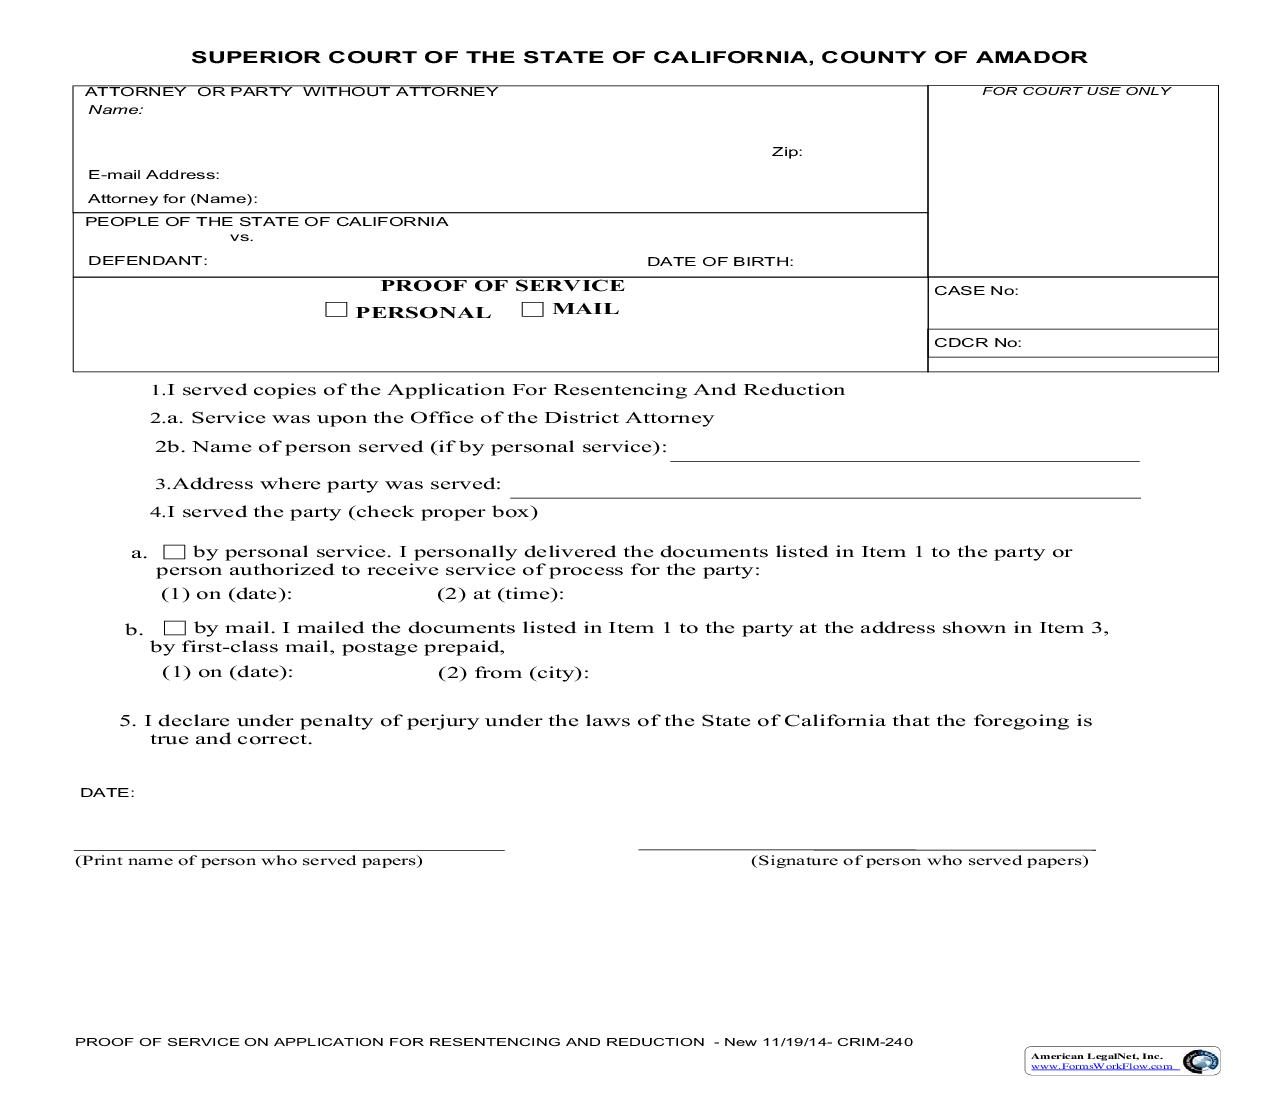 Proof Of Service On Application For Resentencing And Reduction {CRIM-240} | Pdf Fpdf Doc Docx | California